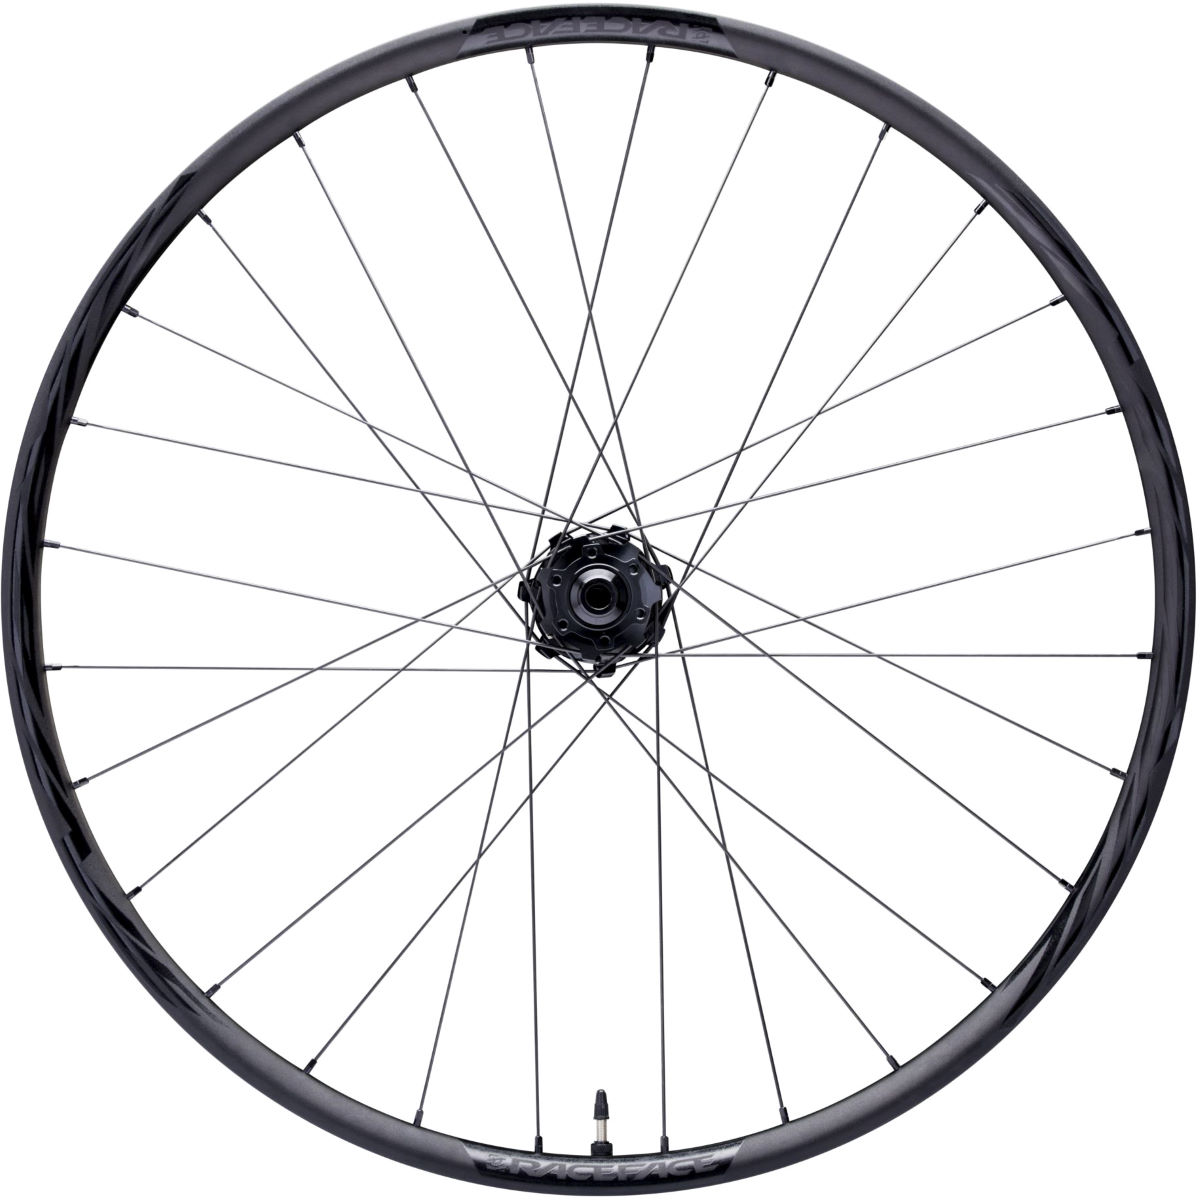 Race Face Turbine R MTB Front Wheel - Ruedas de competición